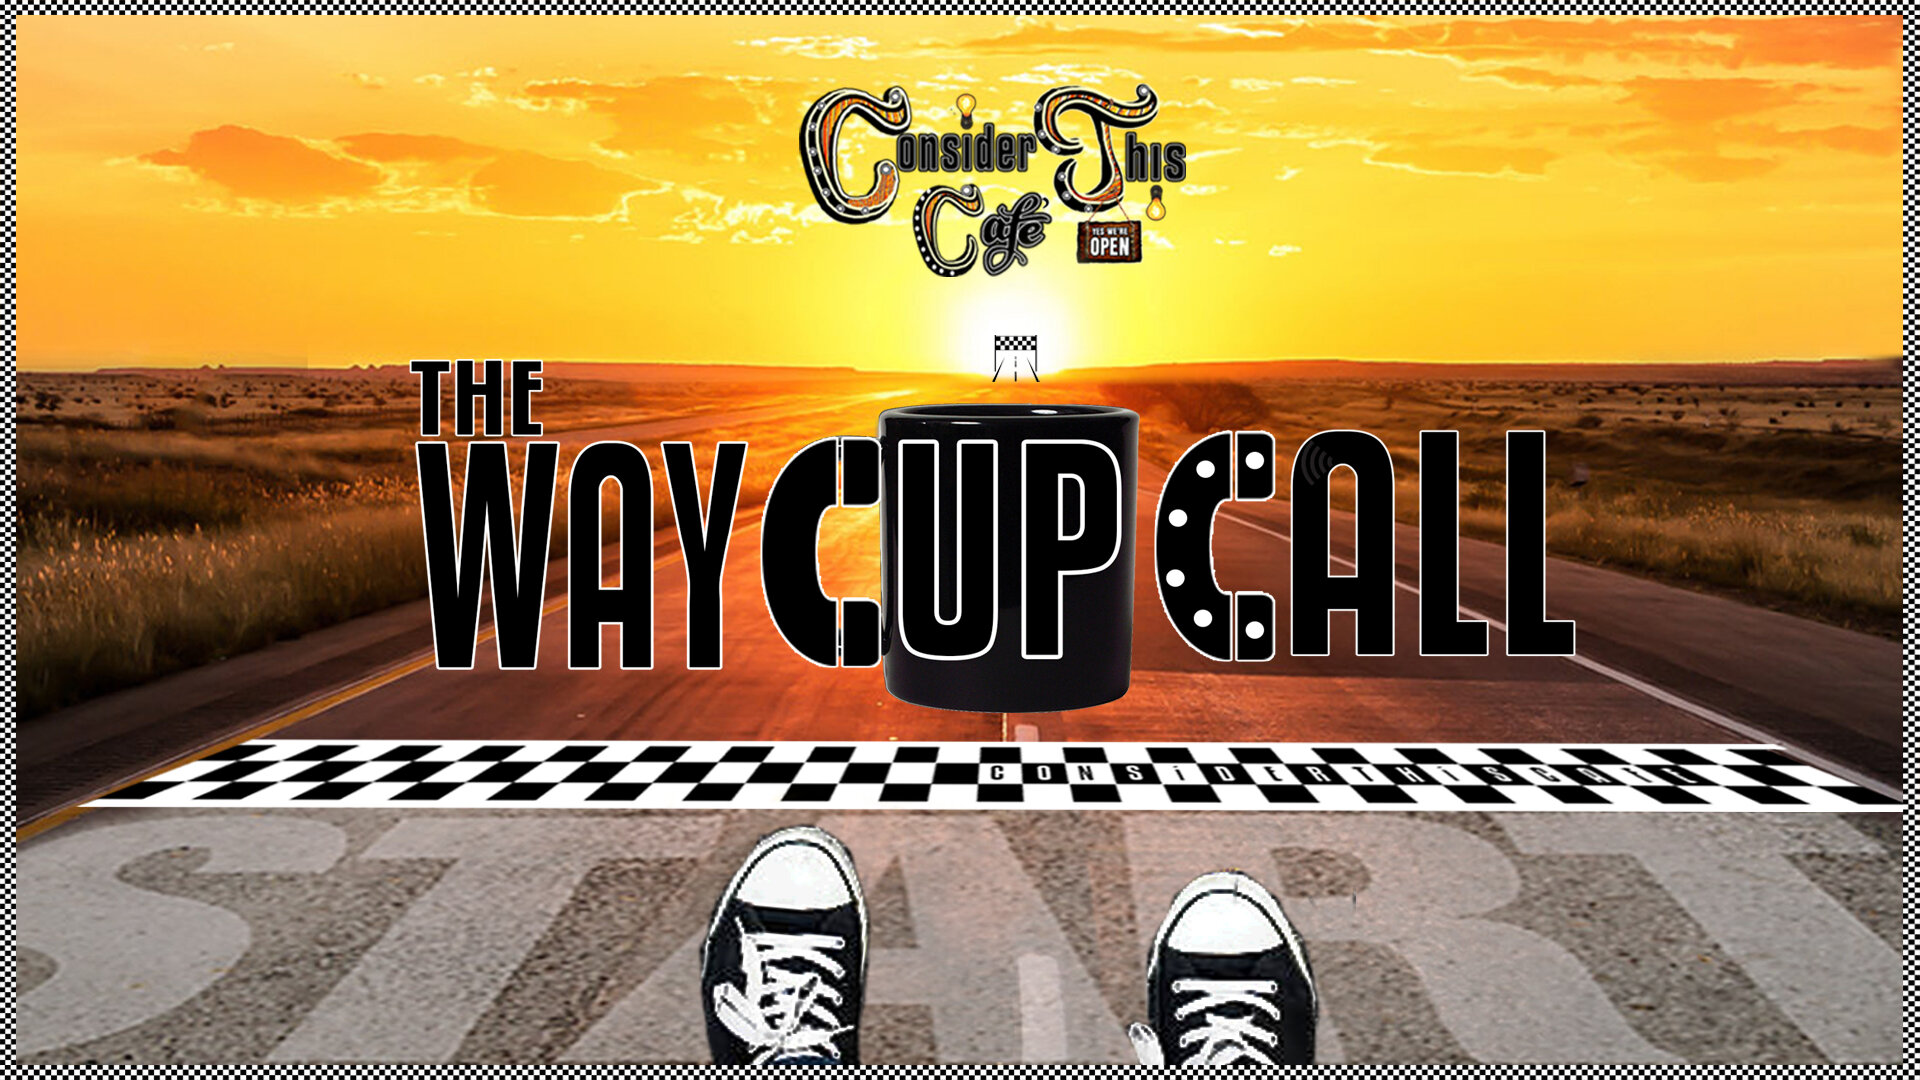 NewTheWayCupCall HD All Black.jpg